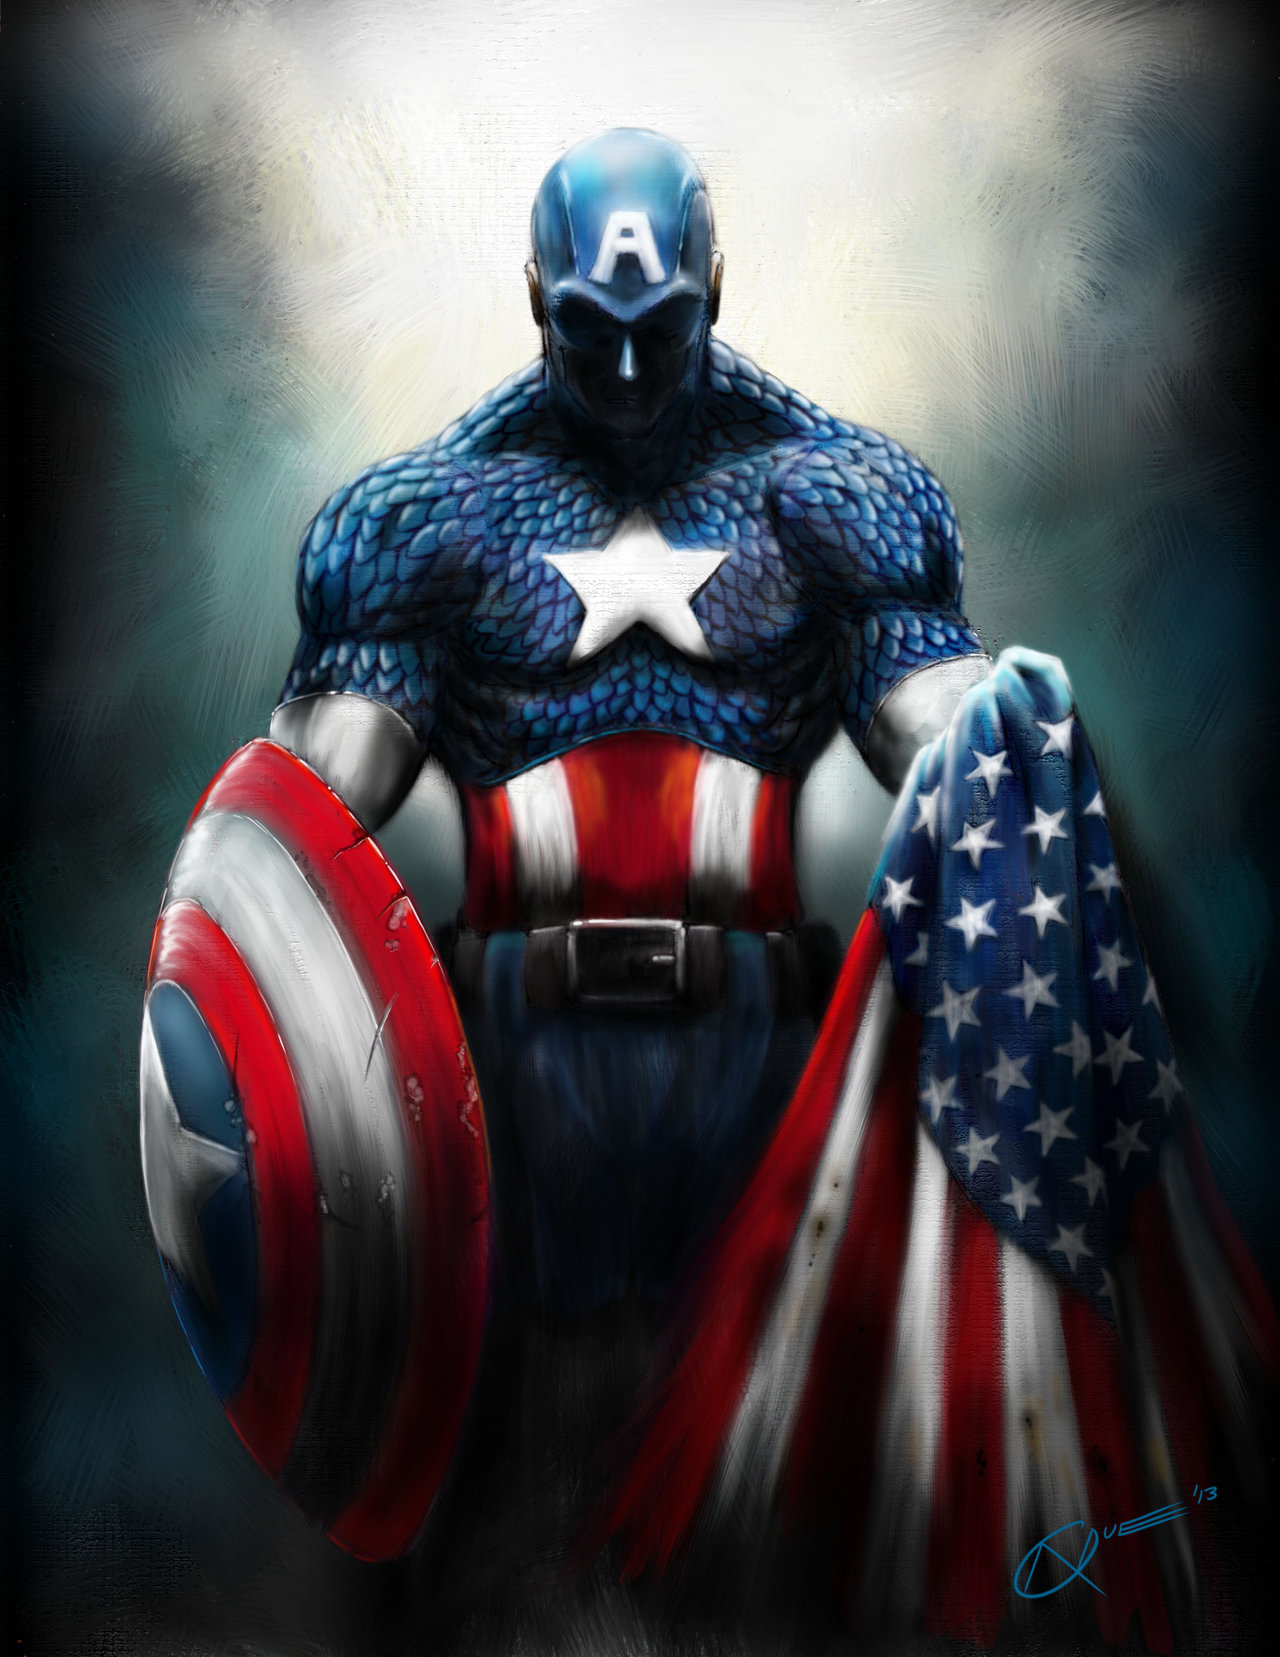 Hd wallpaper captain america - Captain America Desktop Hd Wallpapers Hd Backgrounds